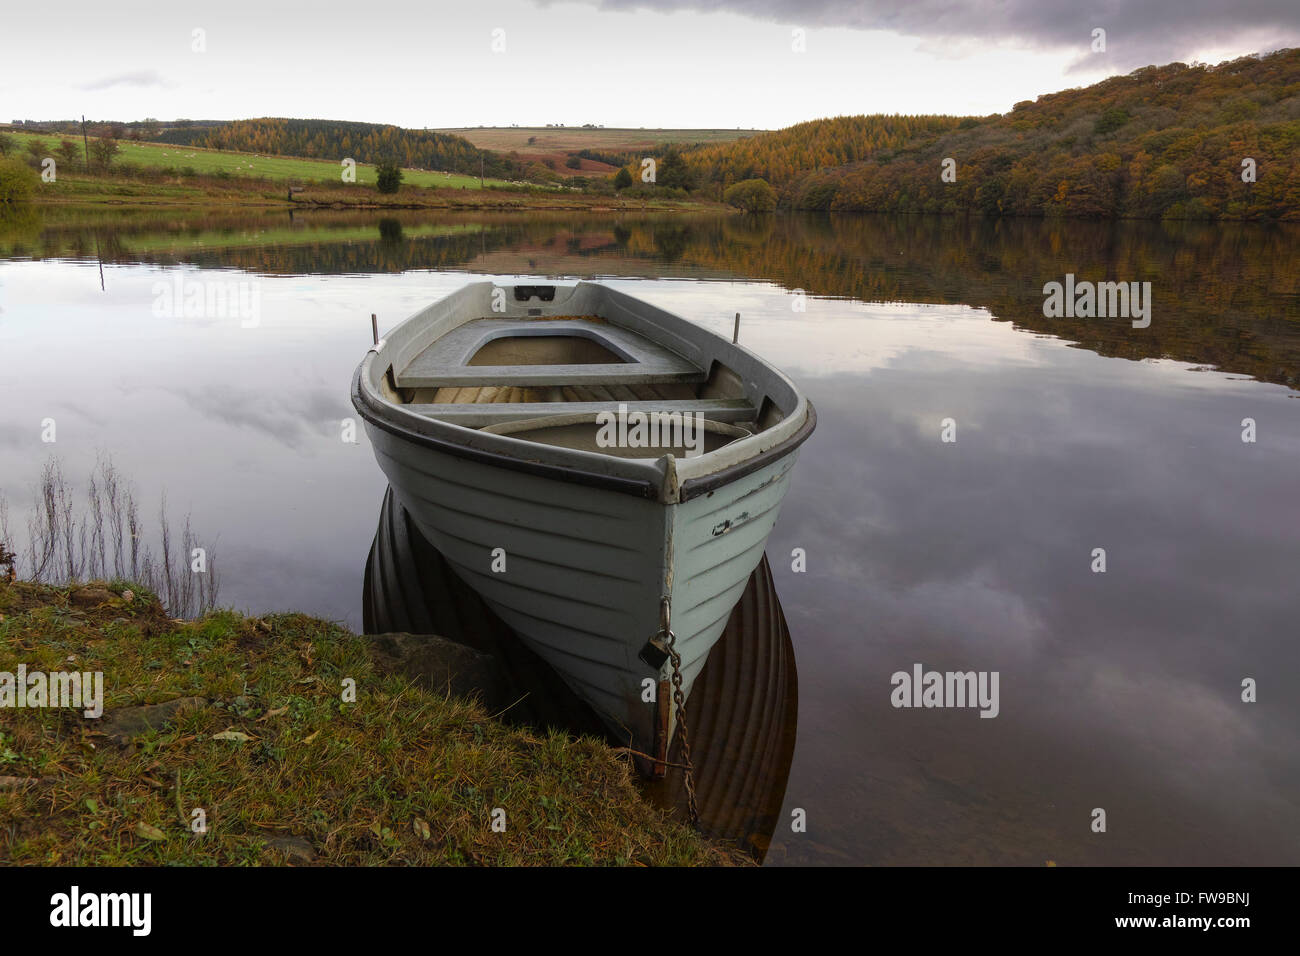 A rowing boat chained to the bank on a still morning on Tunstall reservoir near Wolsingham in Weardale, County Durham. - Stock Image